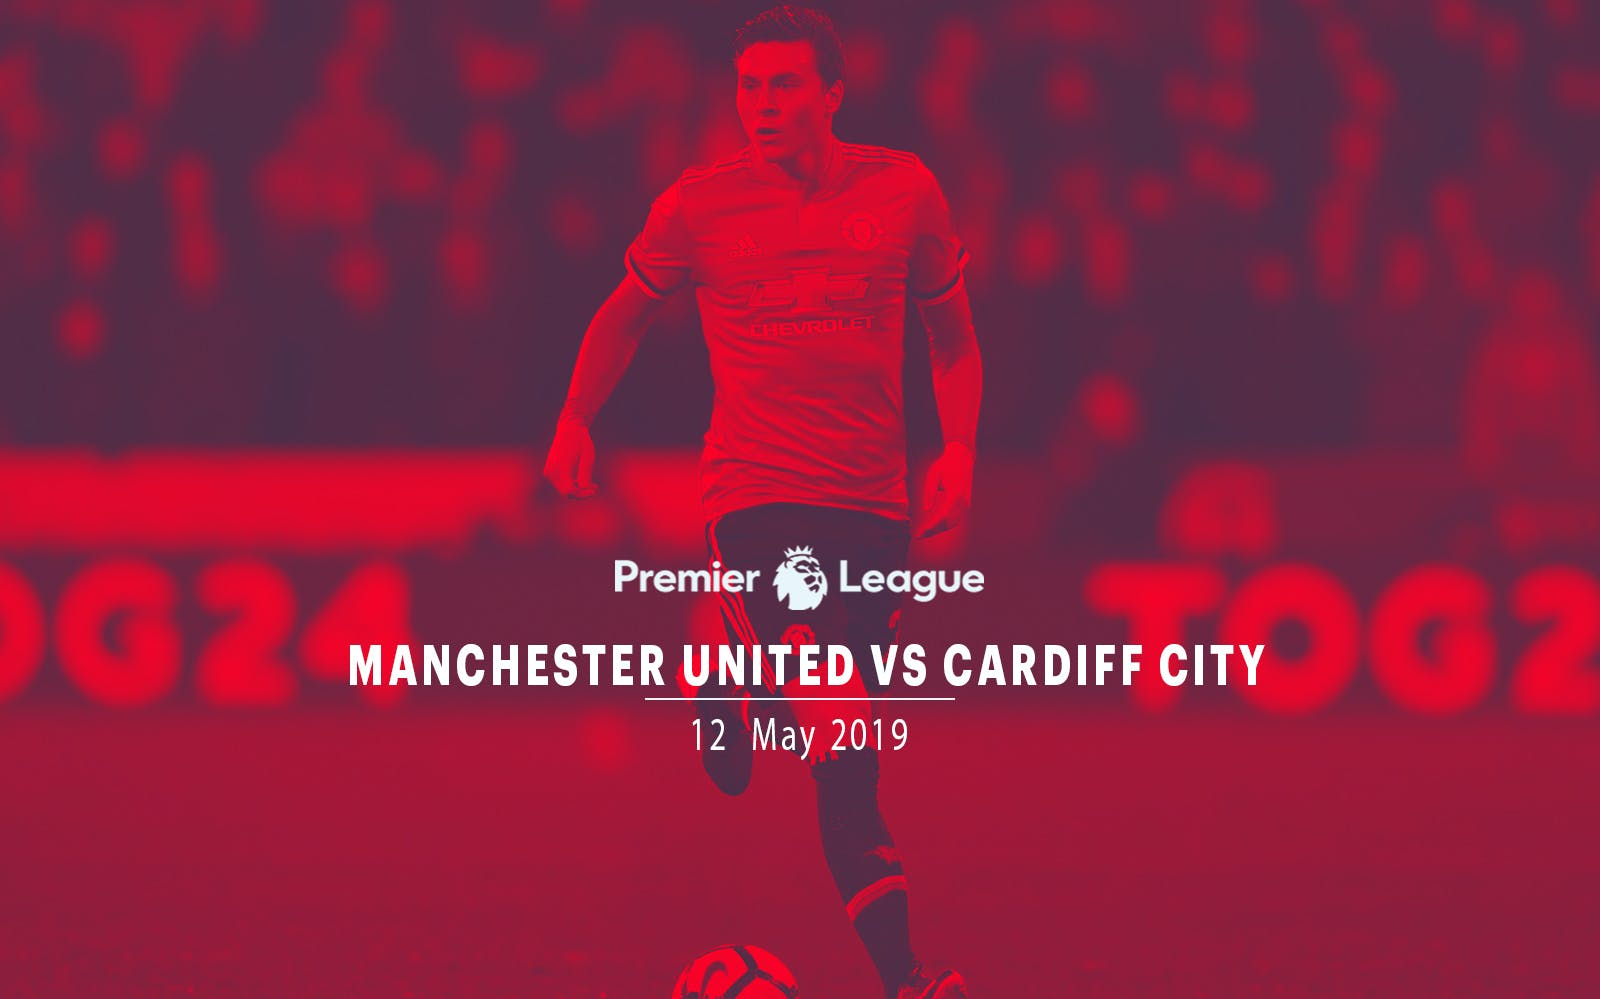 manchester united vs cardiff city-12 may 2019-1